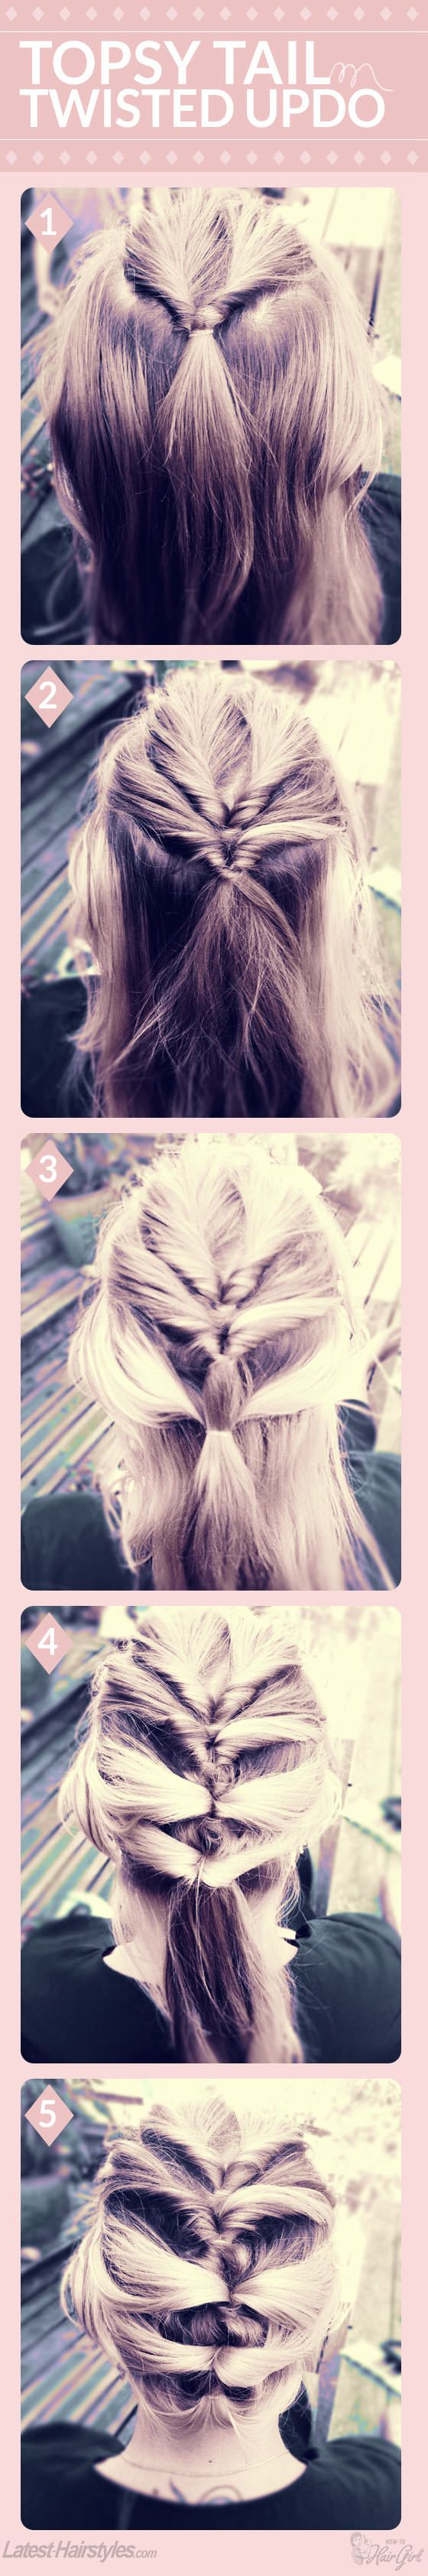 Topsy Tail-Inspired Twisted Updo - Get the full tutorial at http://www.latest-hairstyles.com/tutorials/topsy-tail-twisted-updo.html